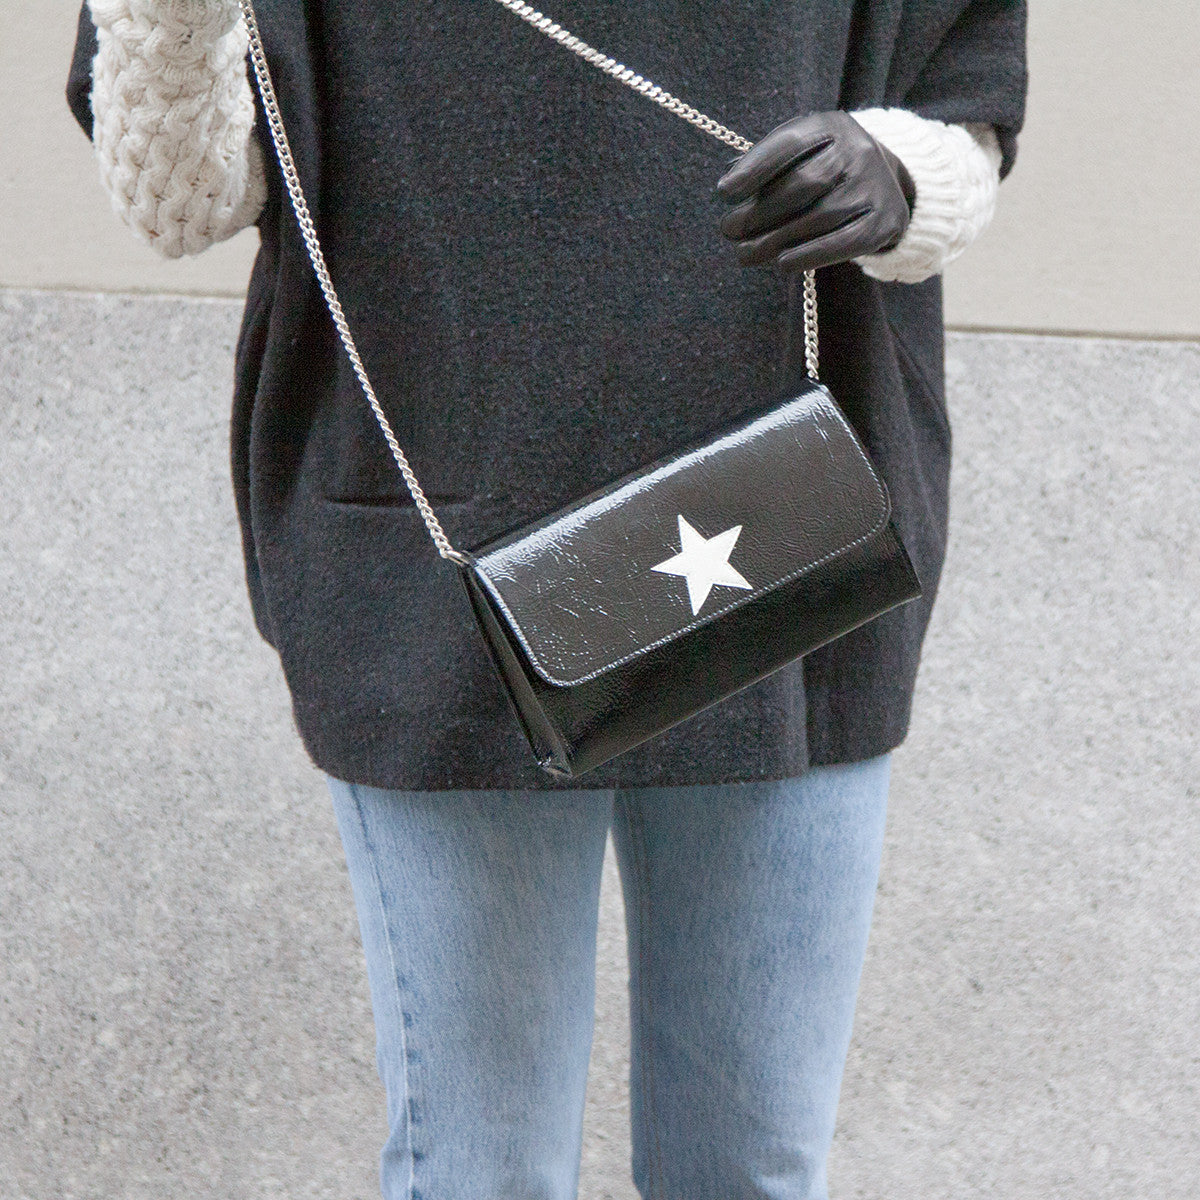 Mich Shoulder Bag Cracked Black Patent Leather w/ White Star - erindananewyork - 3